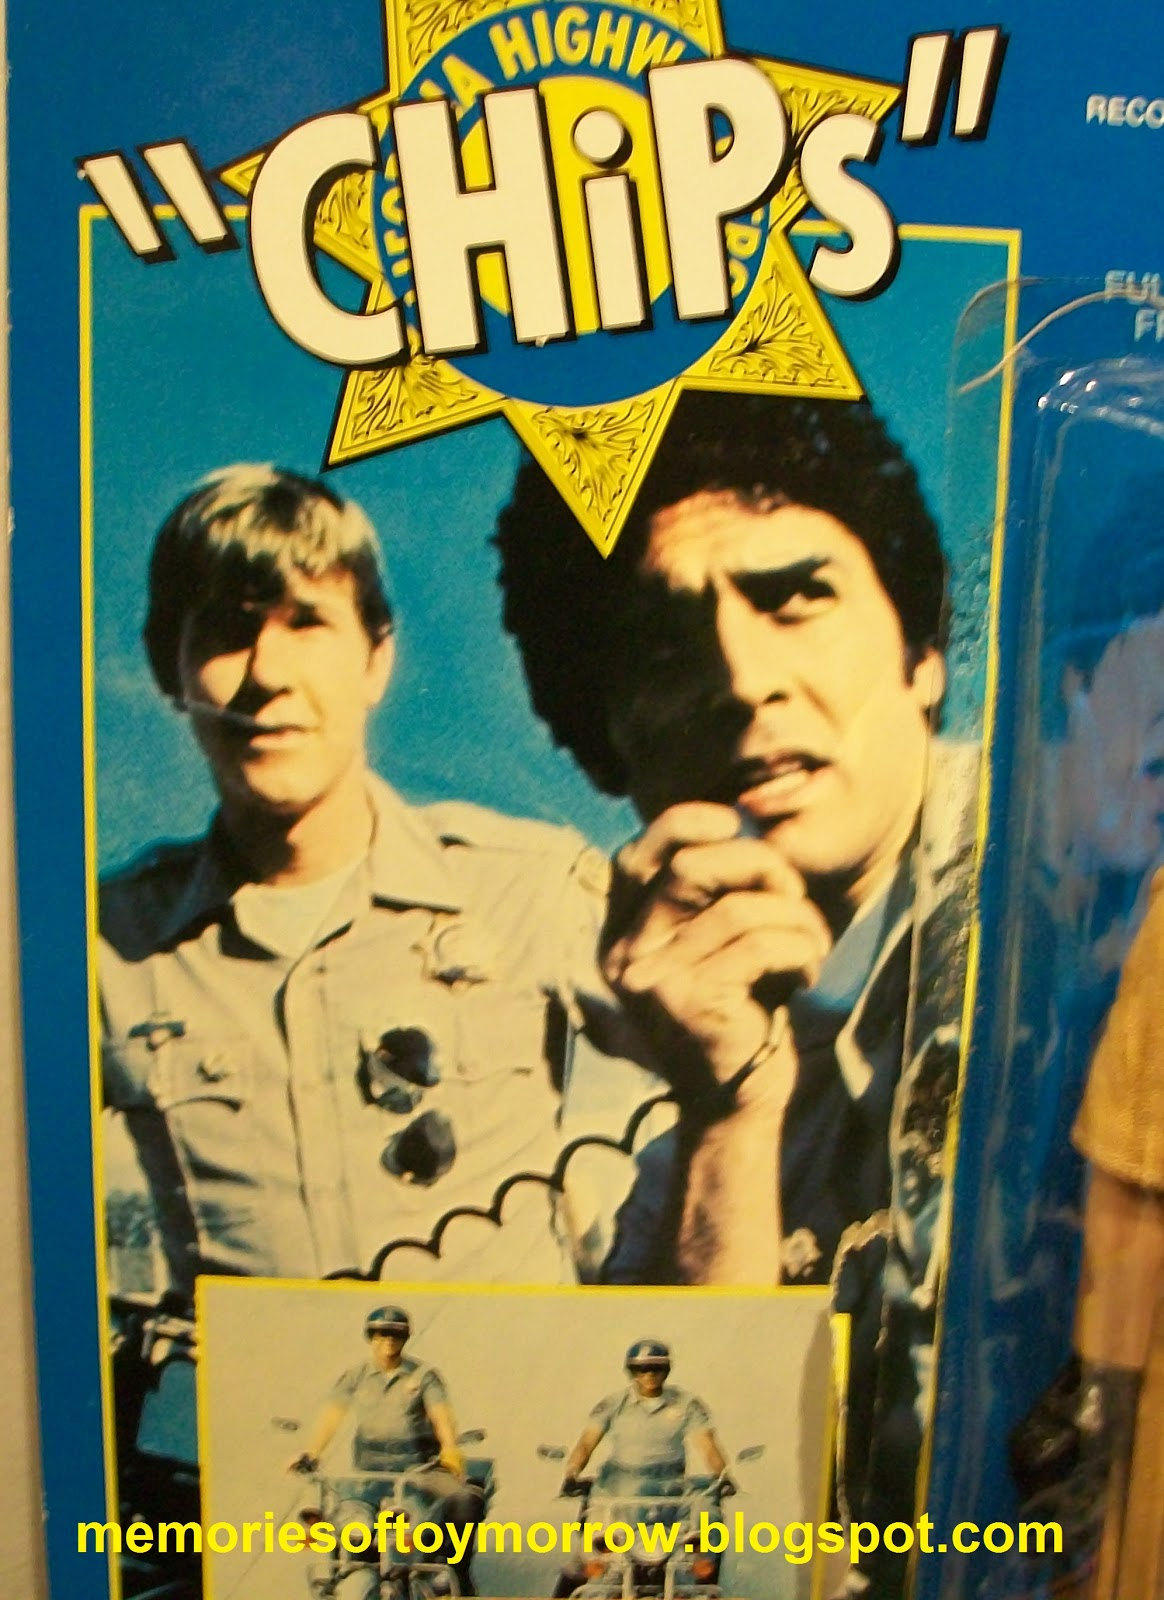 Chips Tv Show Chips mego ponch gets a 1164x1600